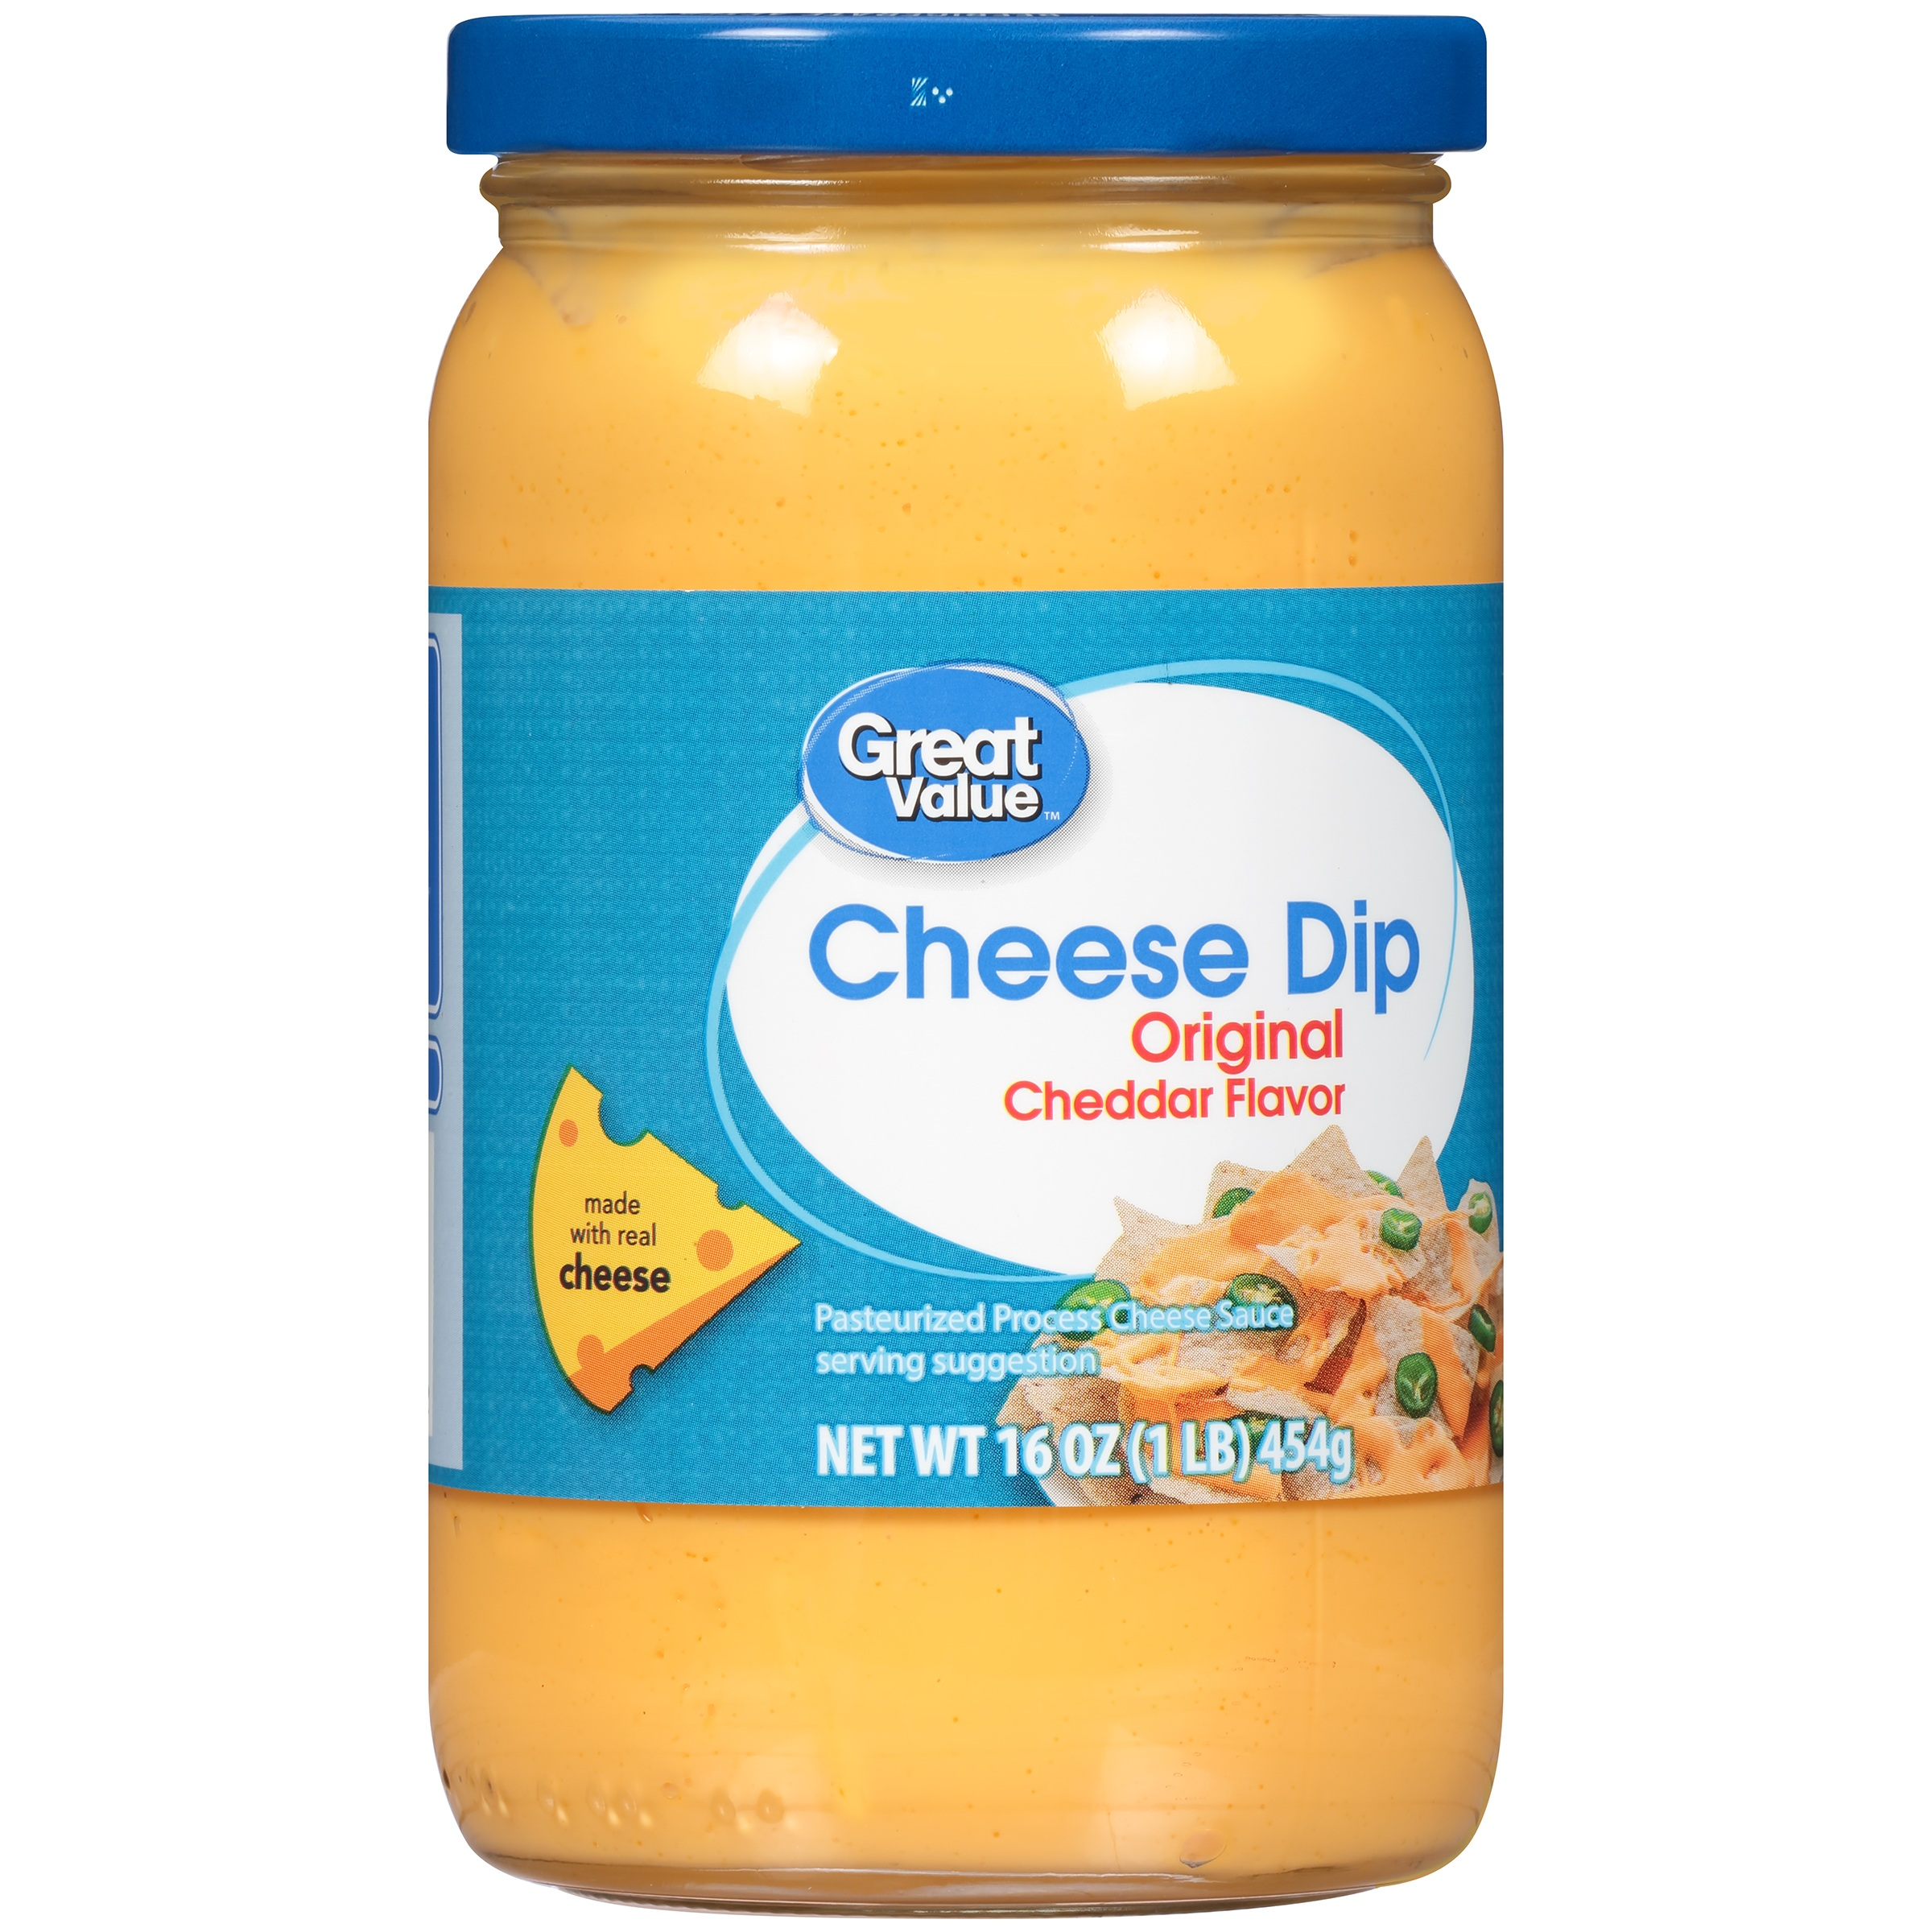 Great Value Cheese Dip, Cheddar Flavor, 16 oz